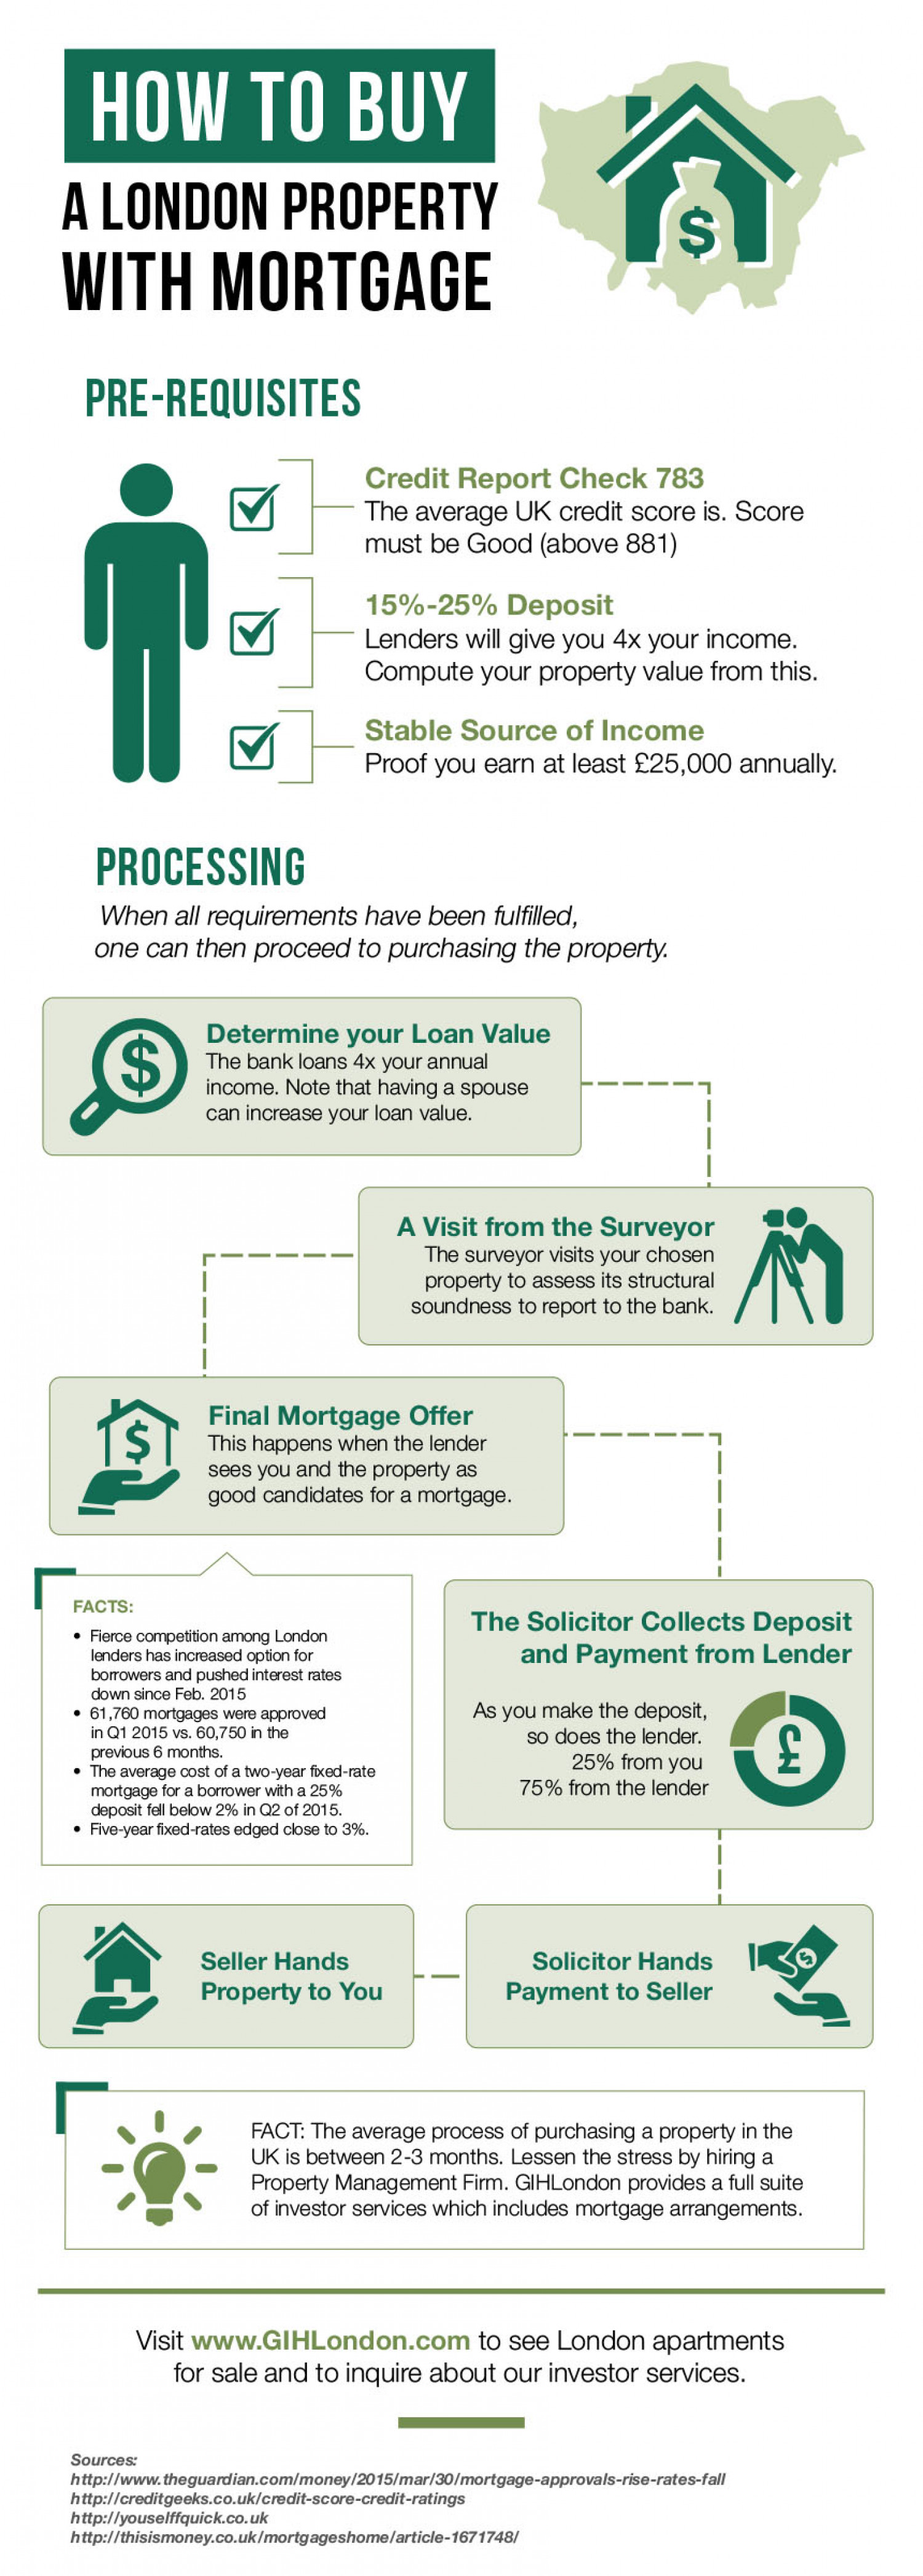 Buying a London Property with Mortgage Infographic